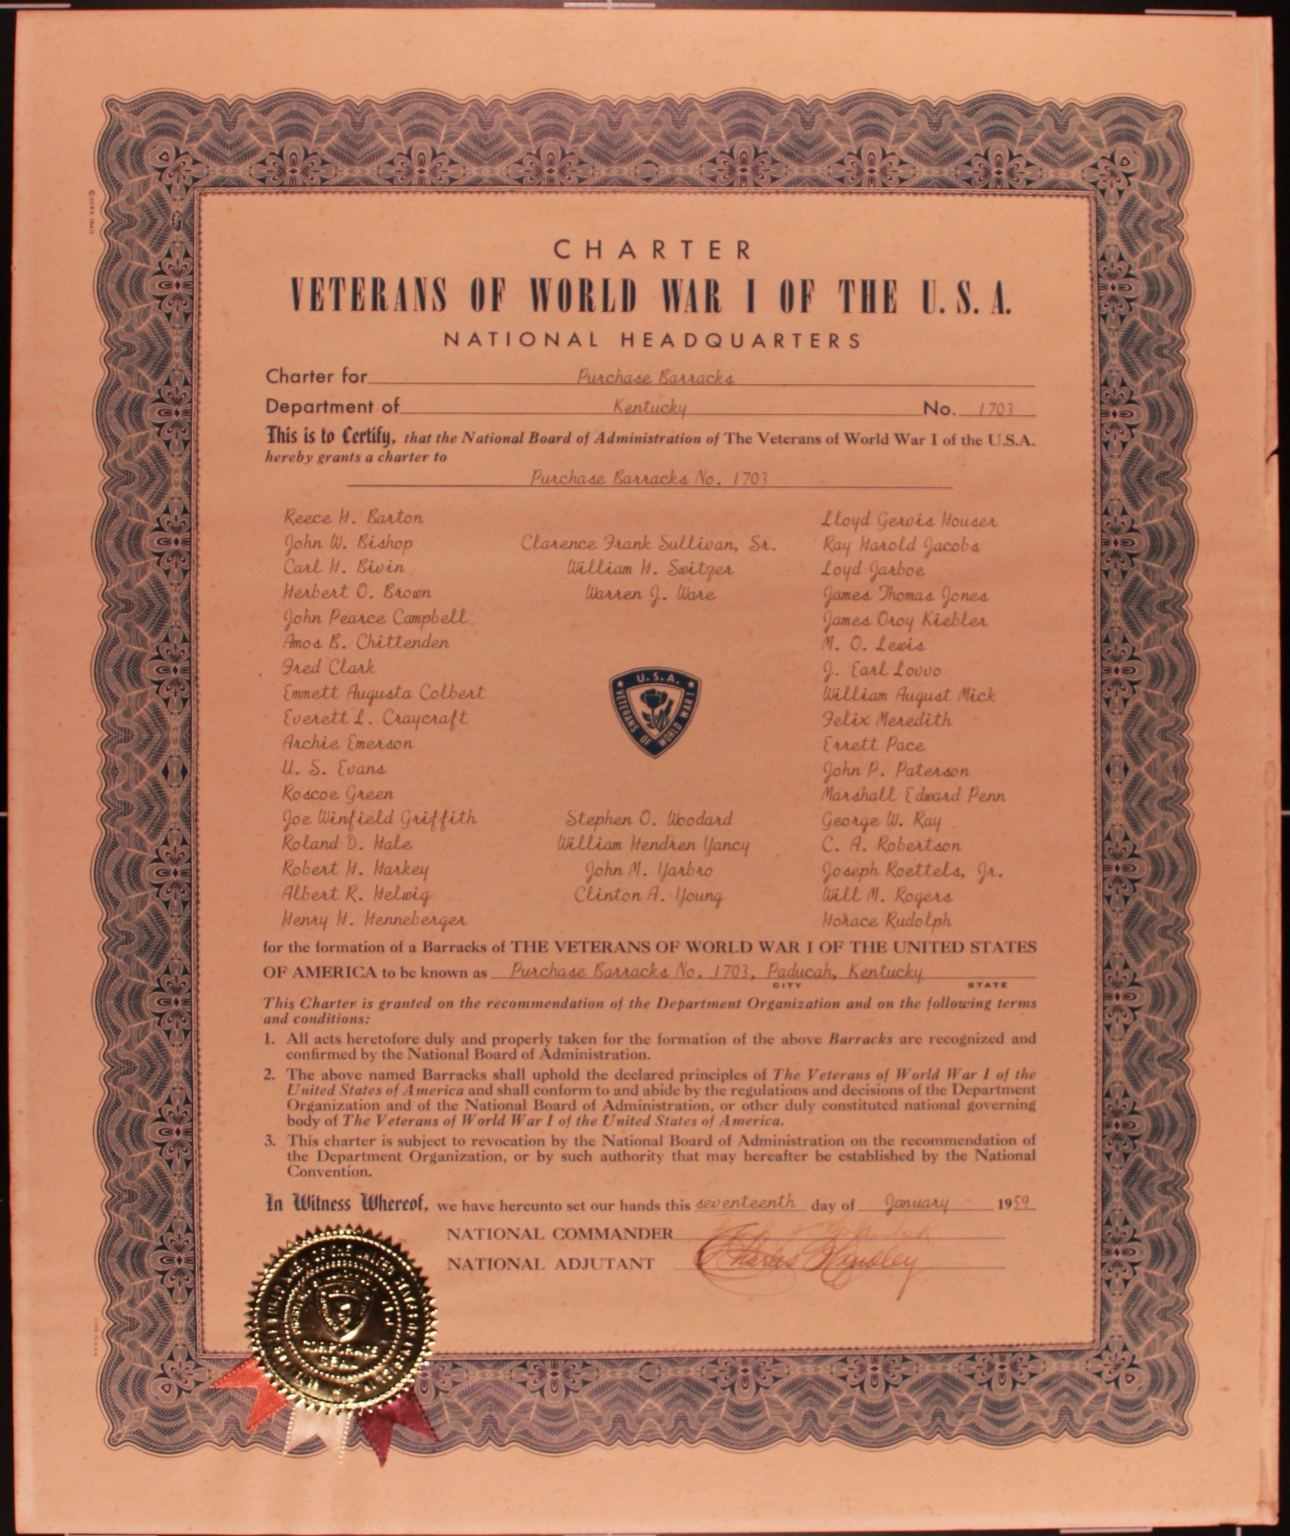 World War I Veterans Charter